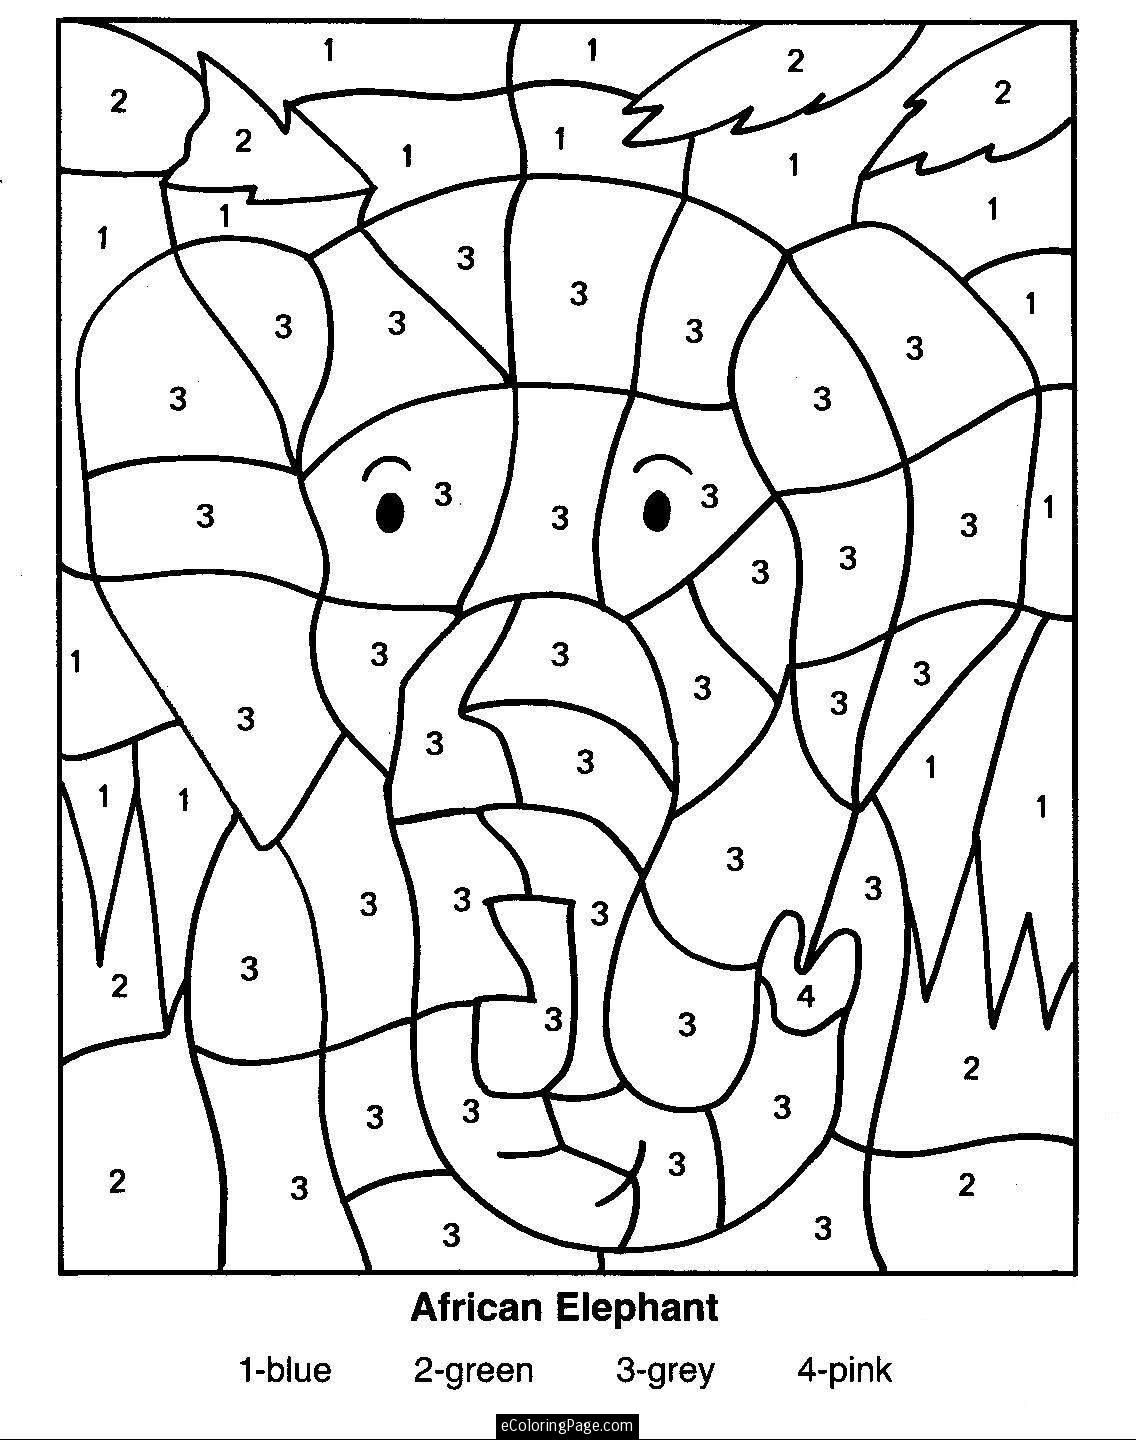 explore free printable coloring pages and more - Kids Colouring Pages To Print